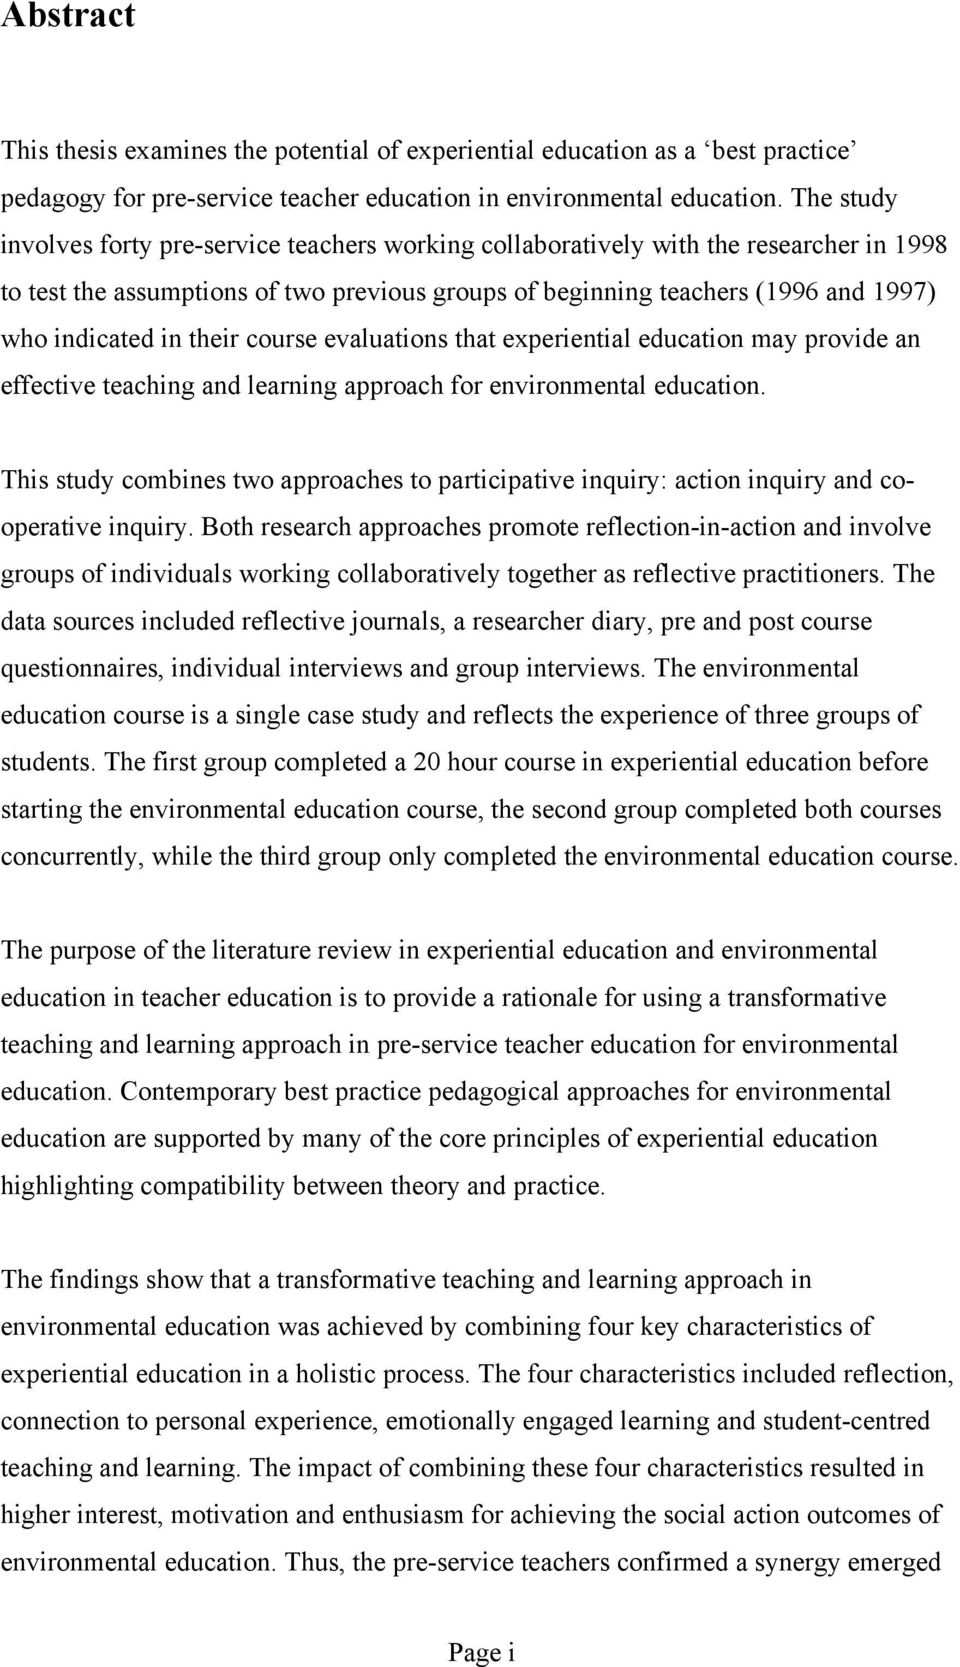 their course evaluations that experiential education may provide an effective teaching and learning approach for environmental education.